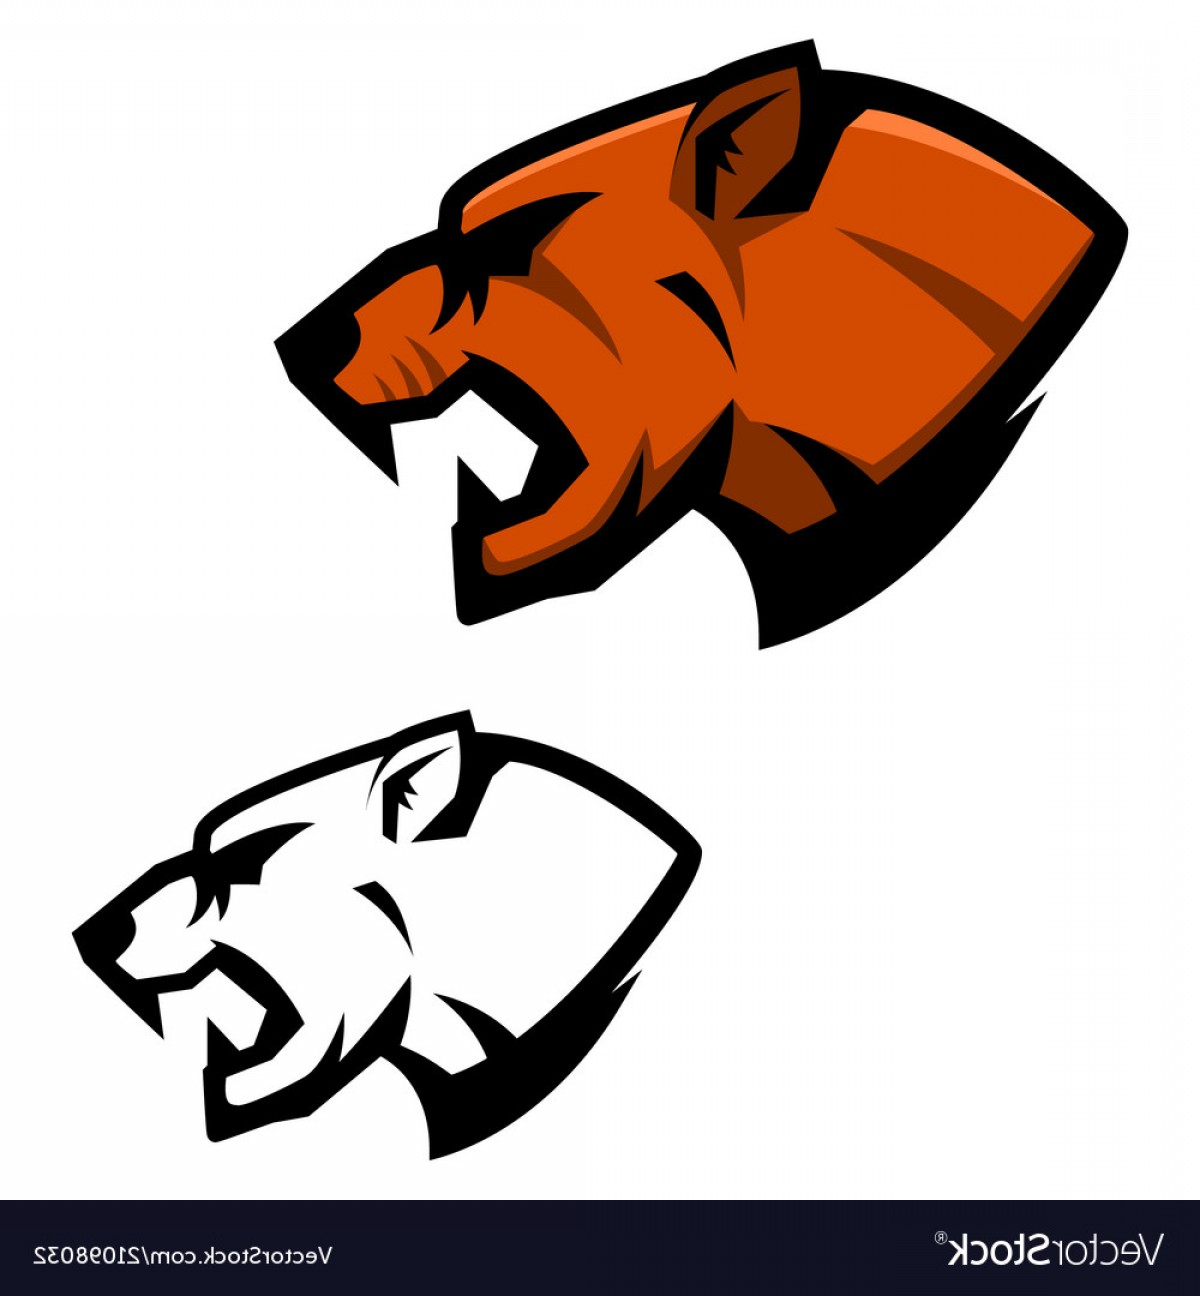 Cougar Logo Vector: Cougar Head Sport Team Mascot Template Design Vector